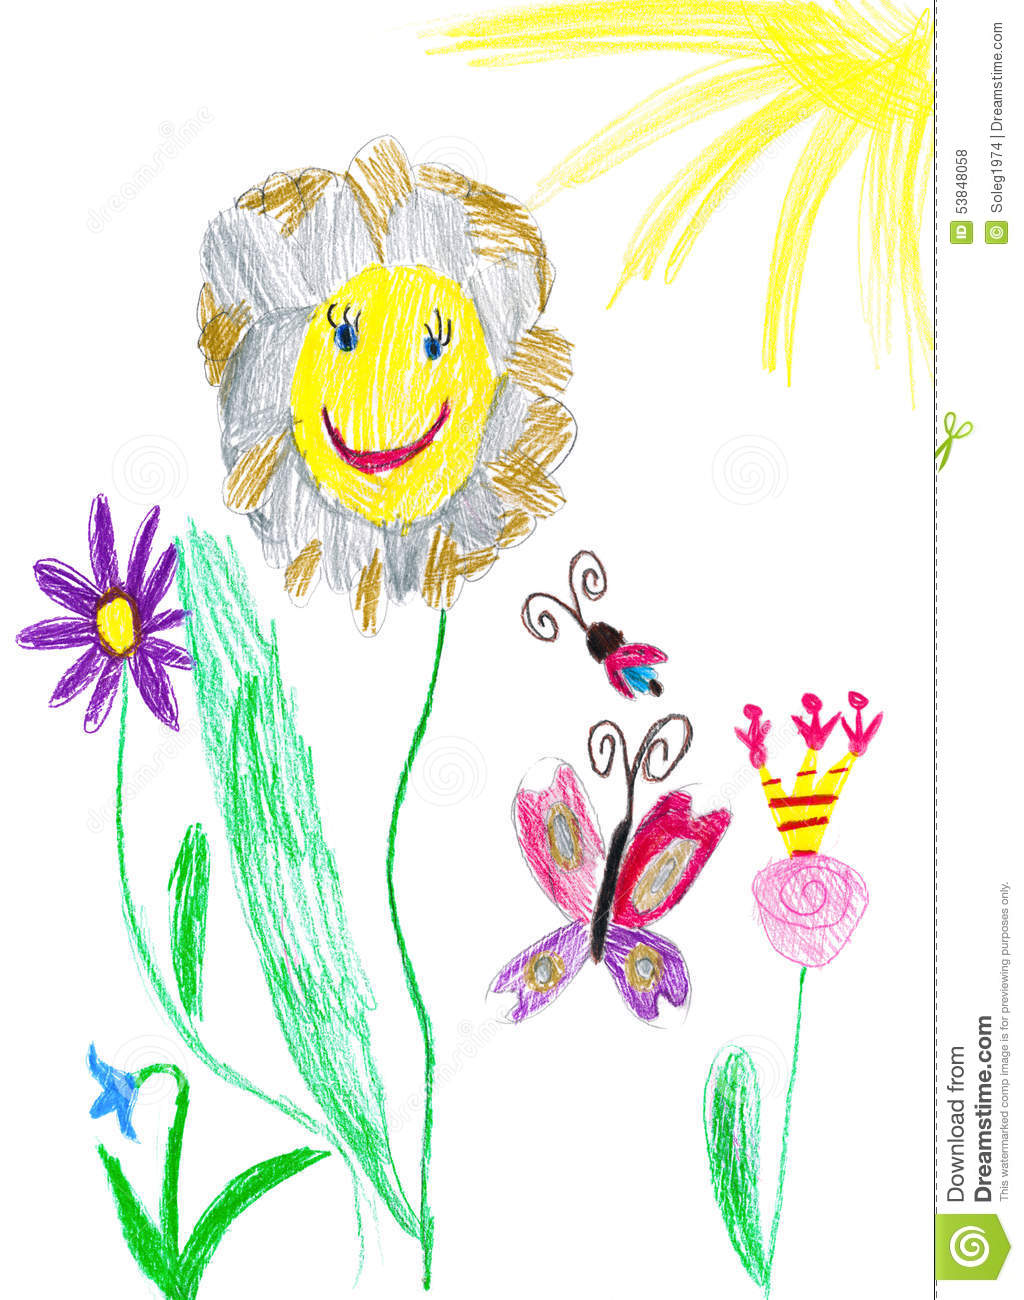 Flower Child Line Drawing : Butterfly and flower child drawing stock illustration